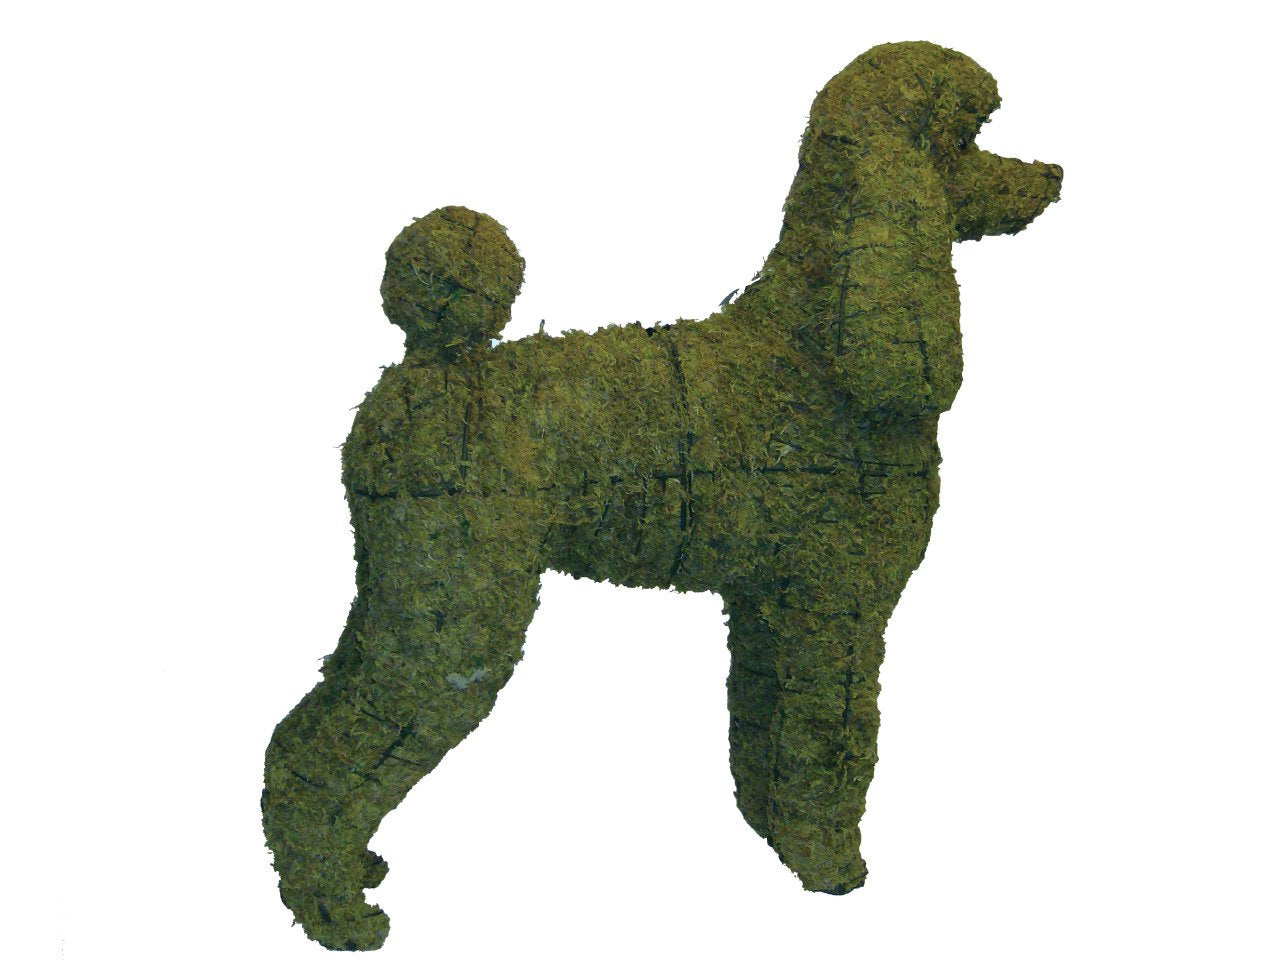 Poodle steel topiary frame filled with green dyed sphagnum moss - Henderson Garden Supply